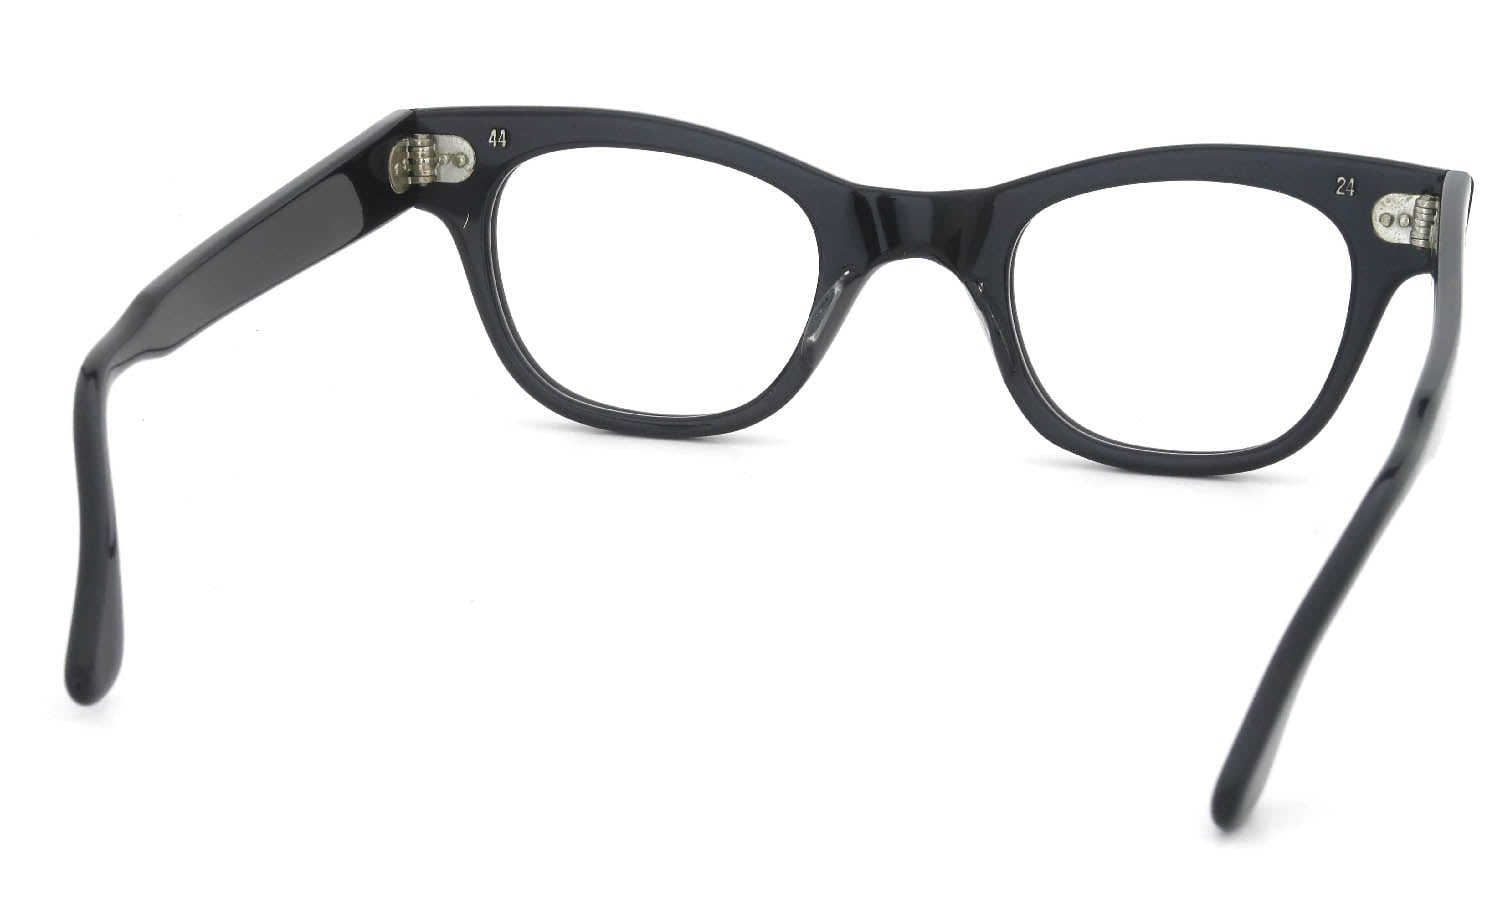 TART 1950s COUNTDOWN BLACK 44-24(v6)